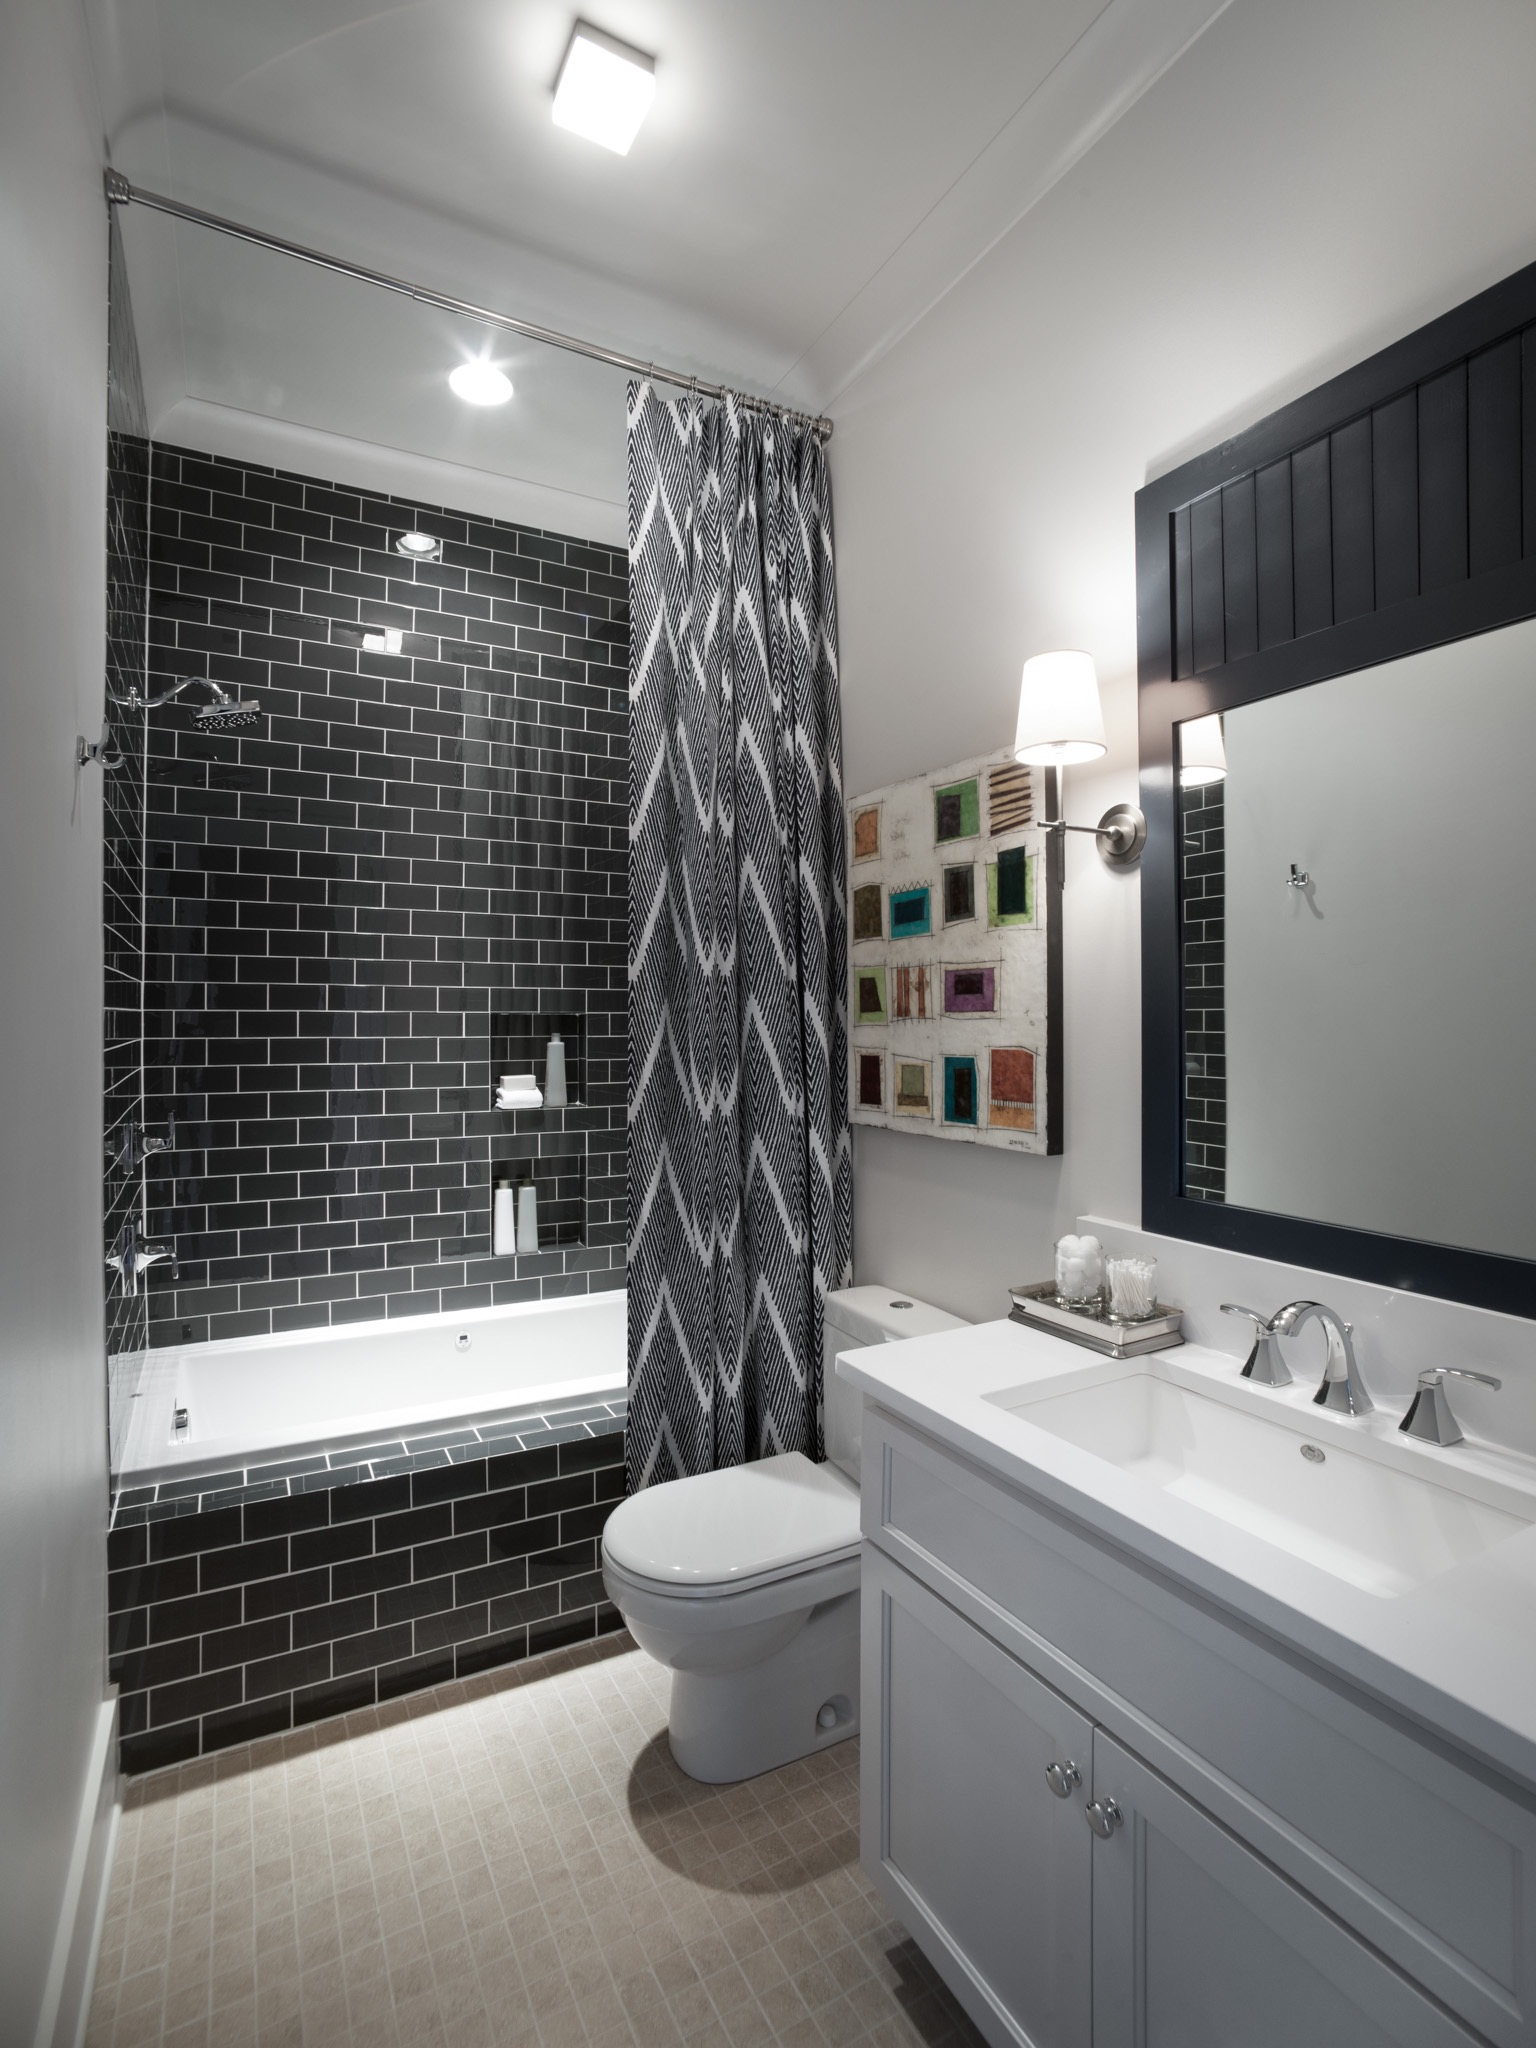 Black And White Modern Bathroom With Chevron Stripe Shower Curtain (Image 4 of 14)